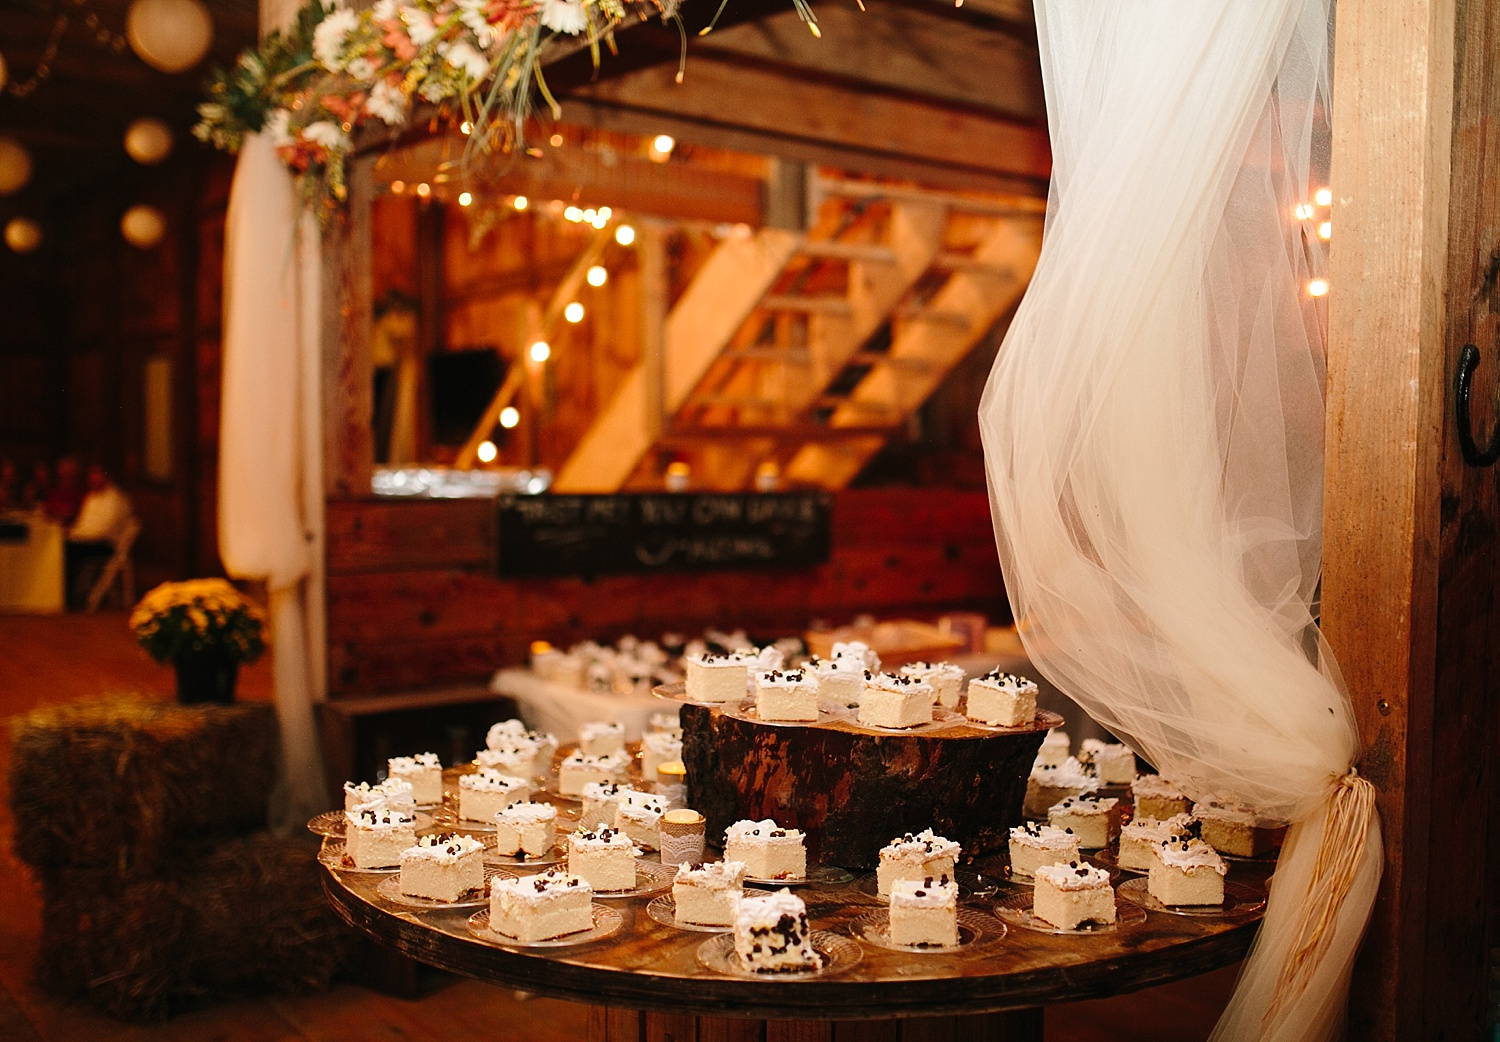 jennyryan_newbeginnings_farmstead_upstatenewyork_wedding_image137.jpg